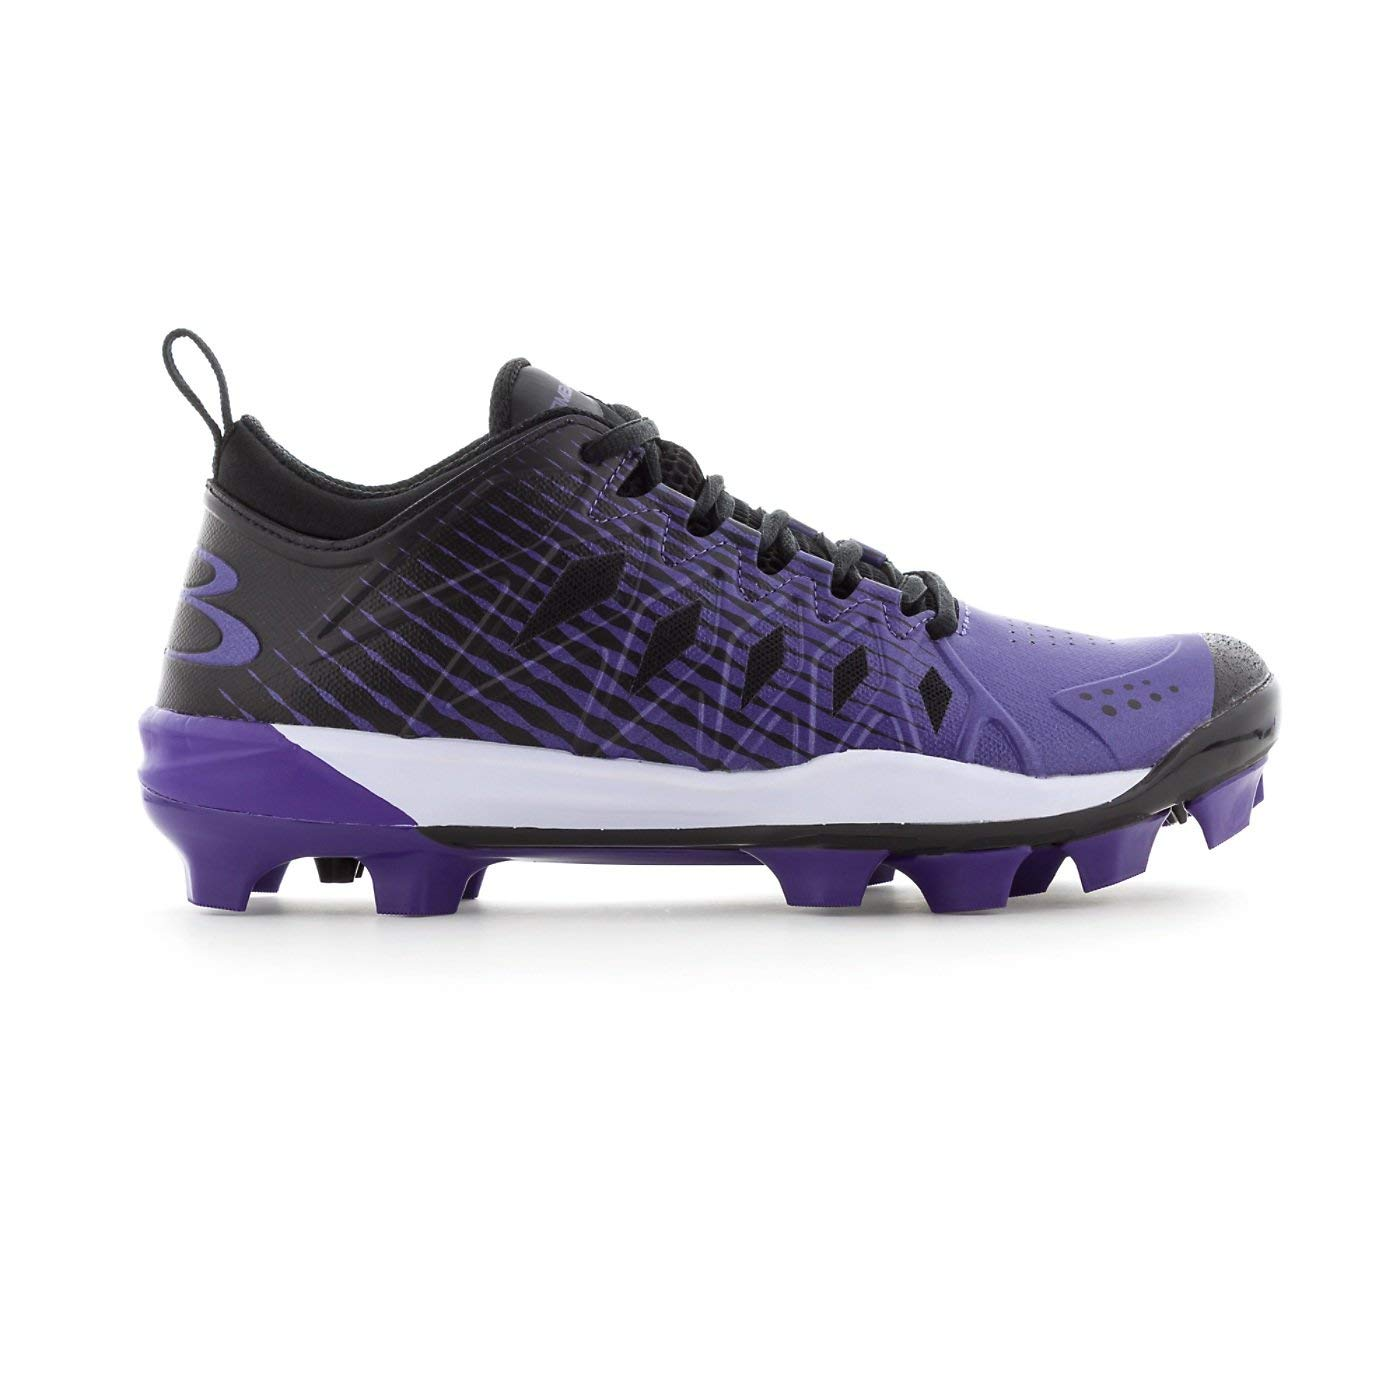 0954619f0108 Get Quotations · Boombah Women's Squadron Molded Cleats - 12 Color Options  - Multiple Sizes